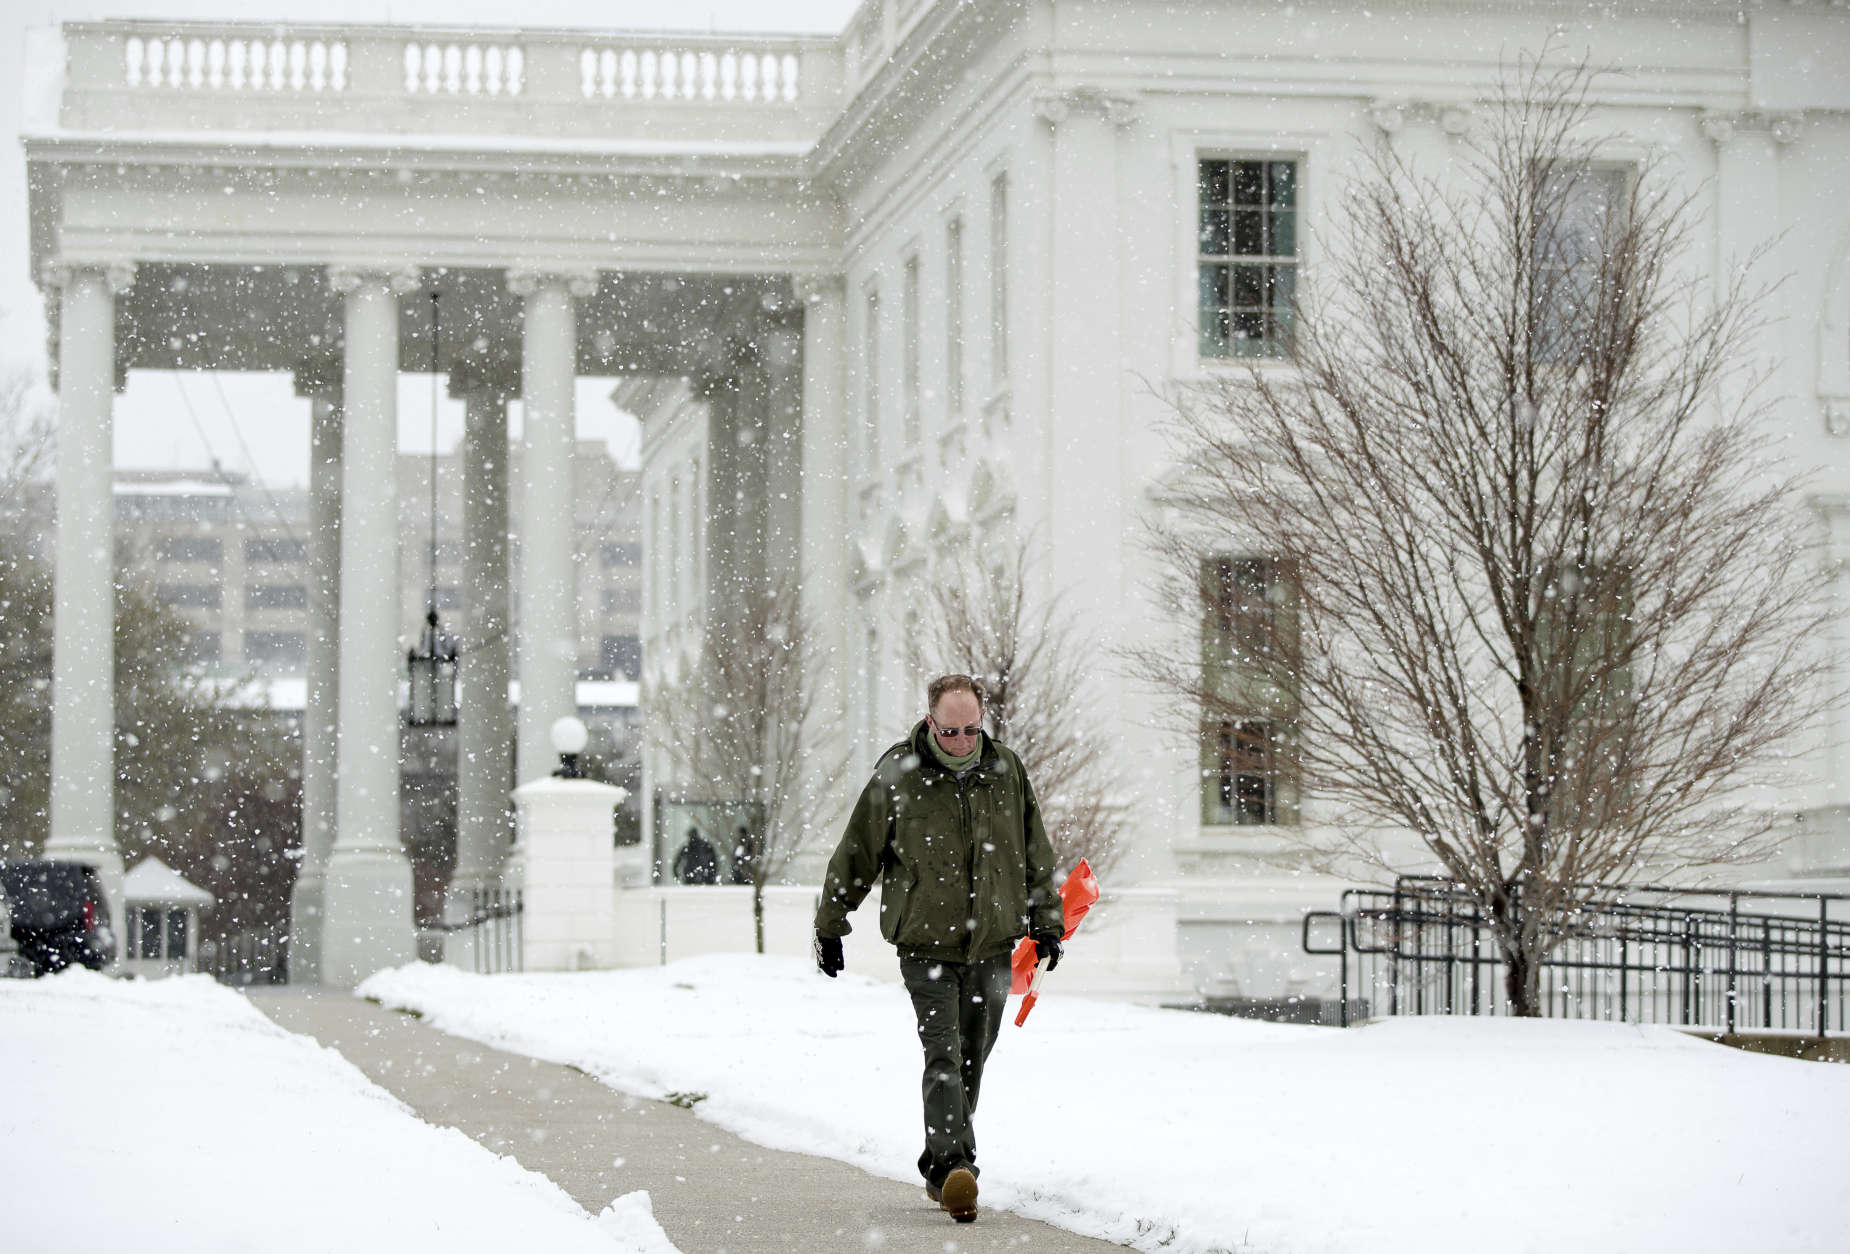 A worker walks through the falling snow outside the White House in Washington, Tuesday, March 14, 2017. A sloppy, blustery late-season storm lashed the Northeast with sleet and more than a foot of snow in places, paralyzing much of the Washington-to-Boston corridor after a remarkably mild February had lulled people into thinking the worst of winter was over.  (AP Photo/Andrew Harnik)